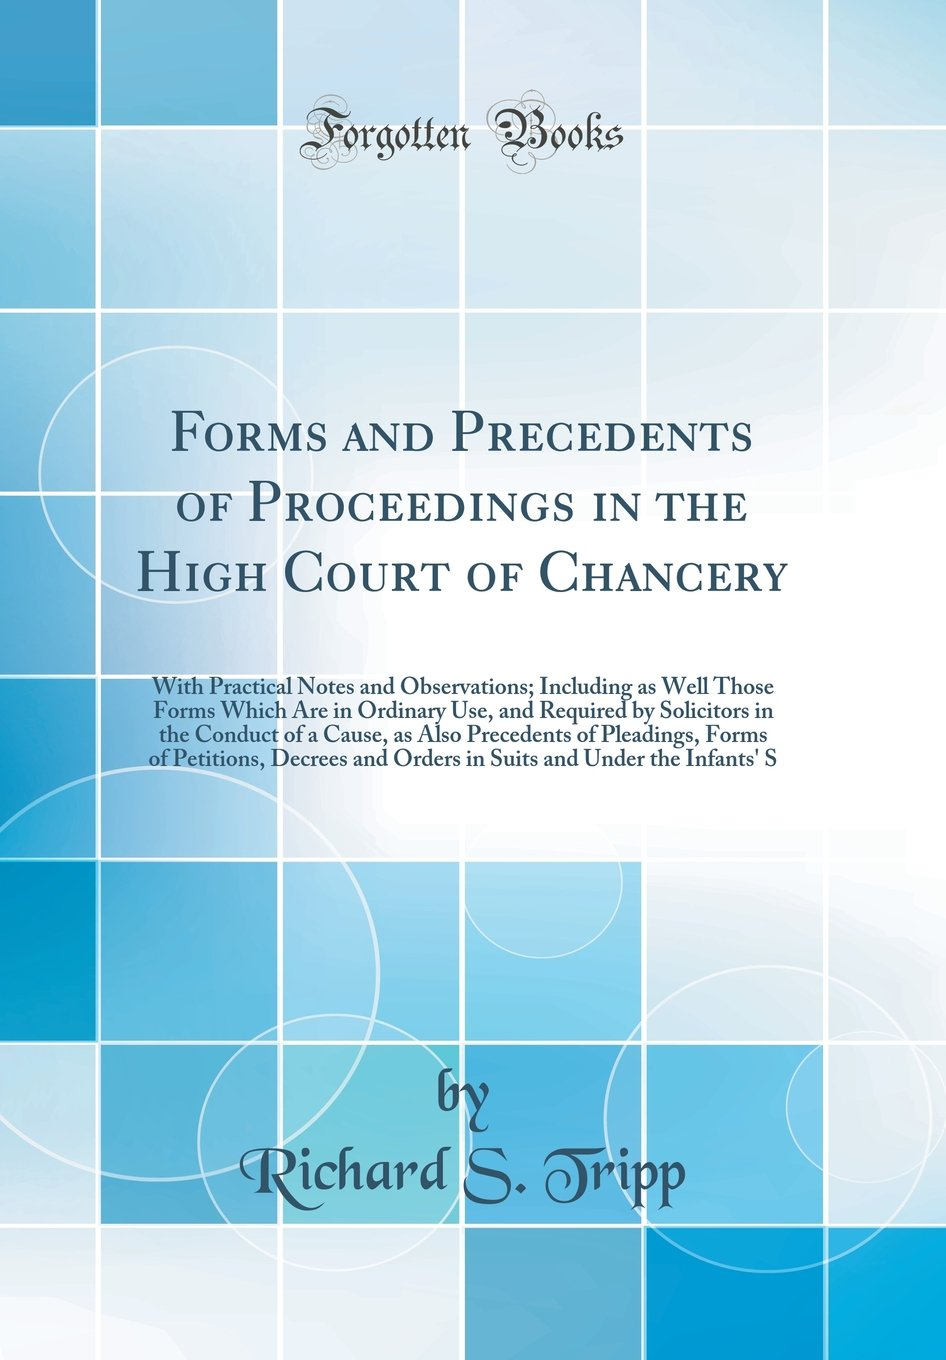 Download Forms and Precedents of Proceedings in the High Court of Chancery: With Practical Notes and Observations; Including as Well Those Forms Which Are in ... Cause, as Also Precedents of Pleadings, Forms pdf